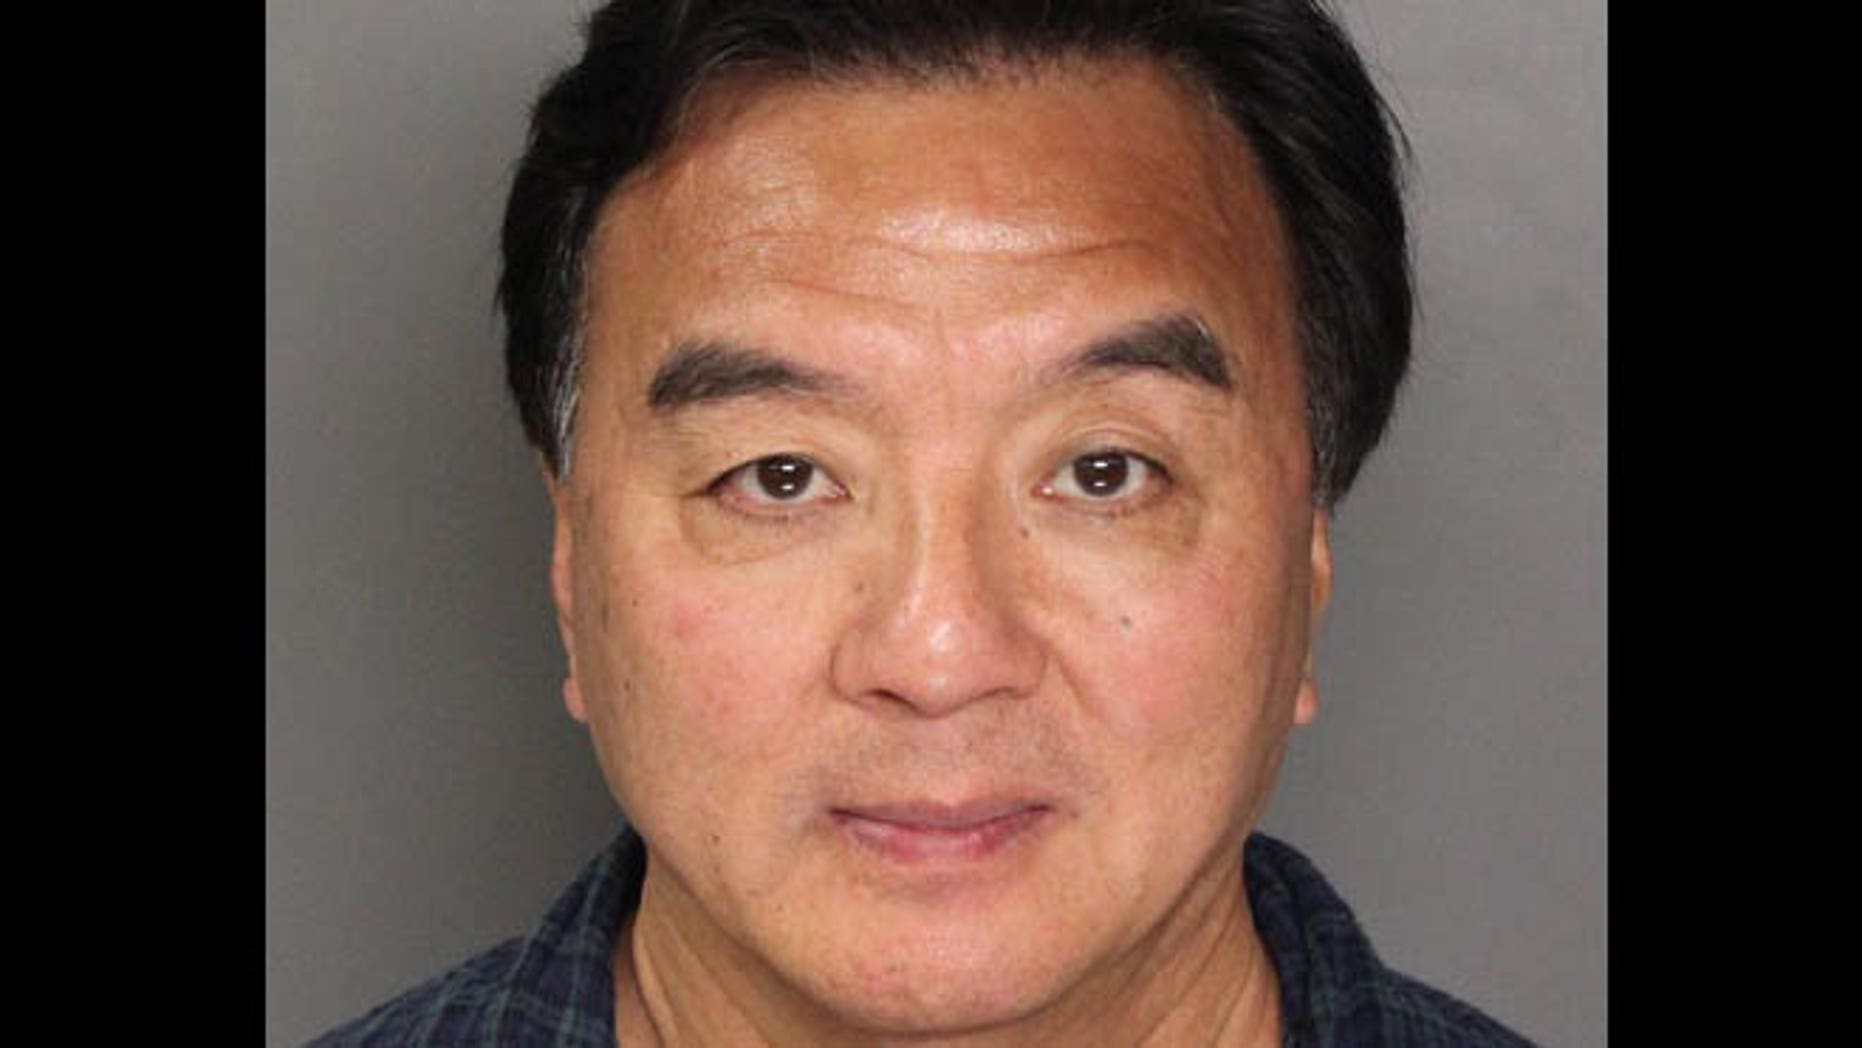 Jimmy Shao was arrested Monday for calling 911 more than a 100 times in the past month.